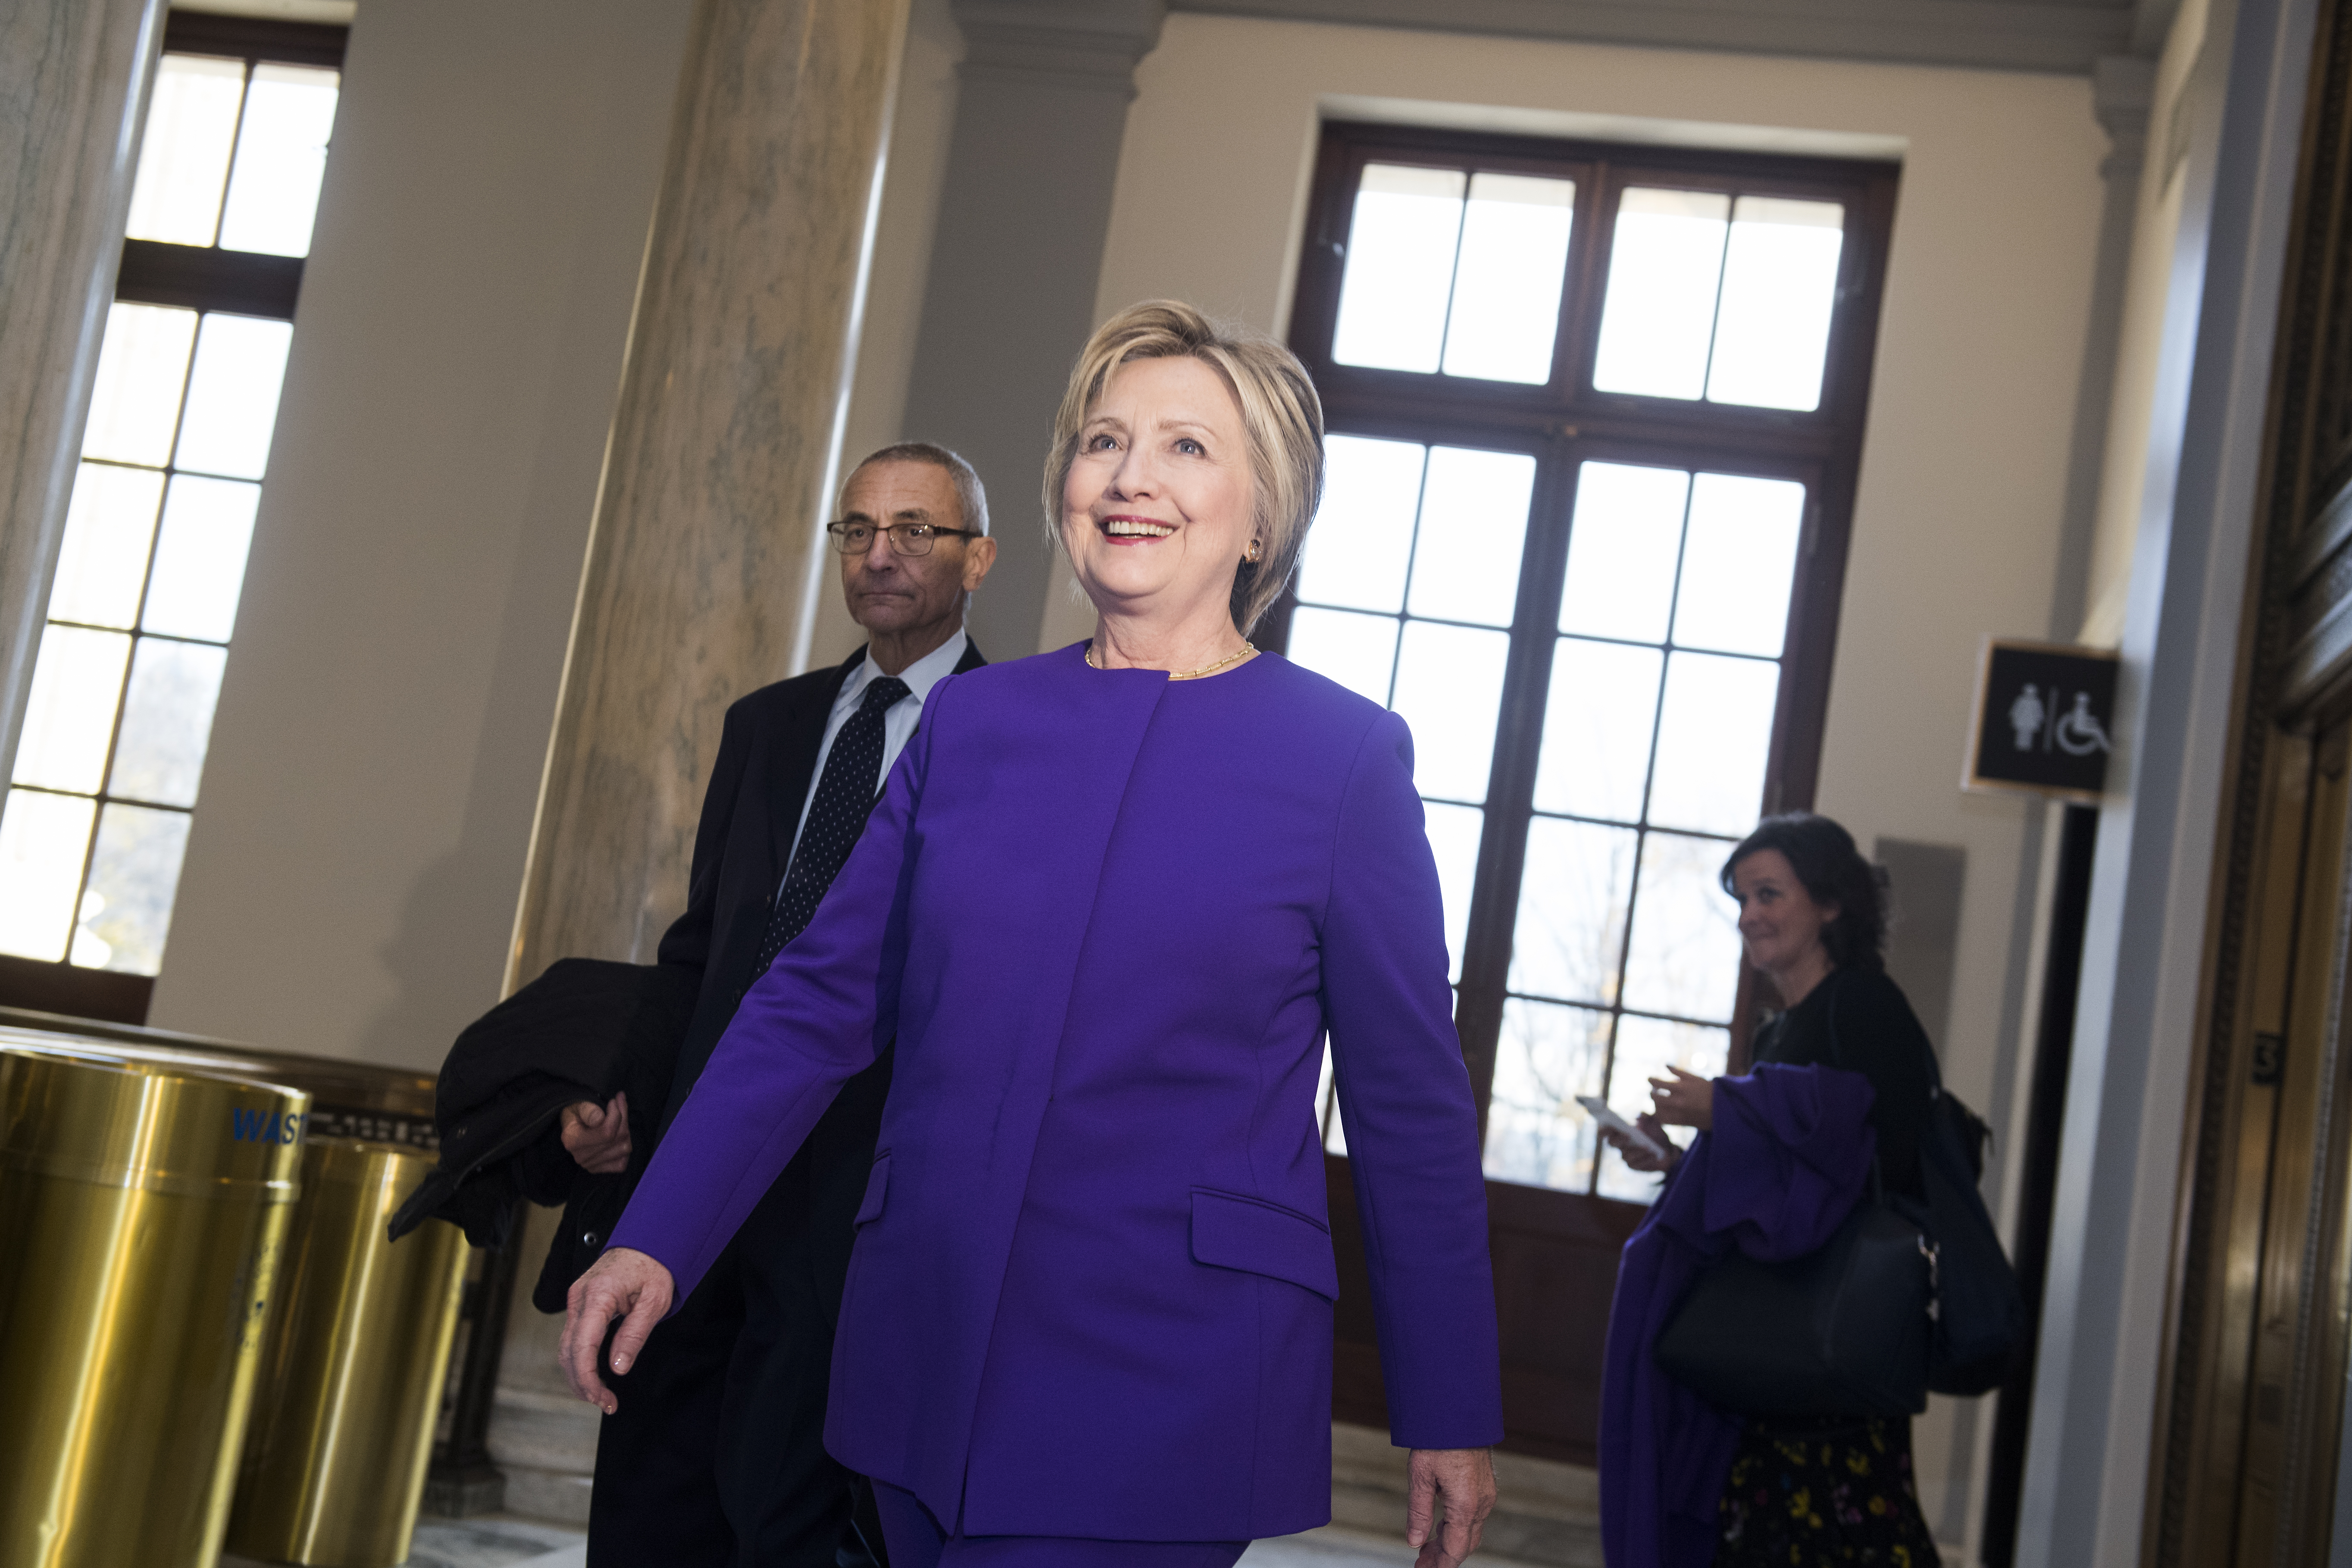 Former Secretary of State Hillary Clinton and John Podesta arrive for a portrait unveiling ceremony for retiring Senate Minority Leader Harry Reid, D-Nev., in Russell Building's Kennedy Caucus Room, December 08, 2016.